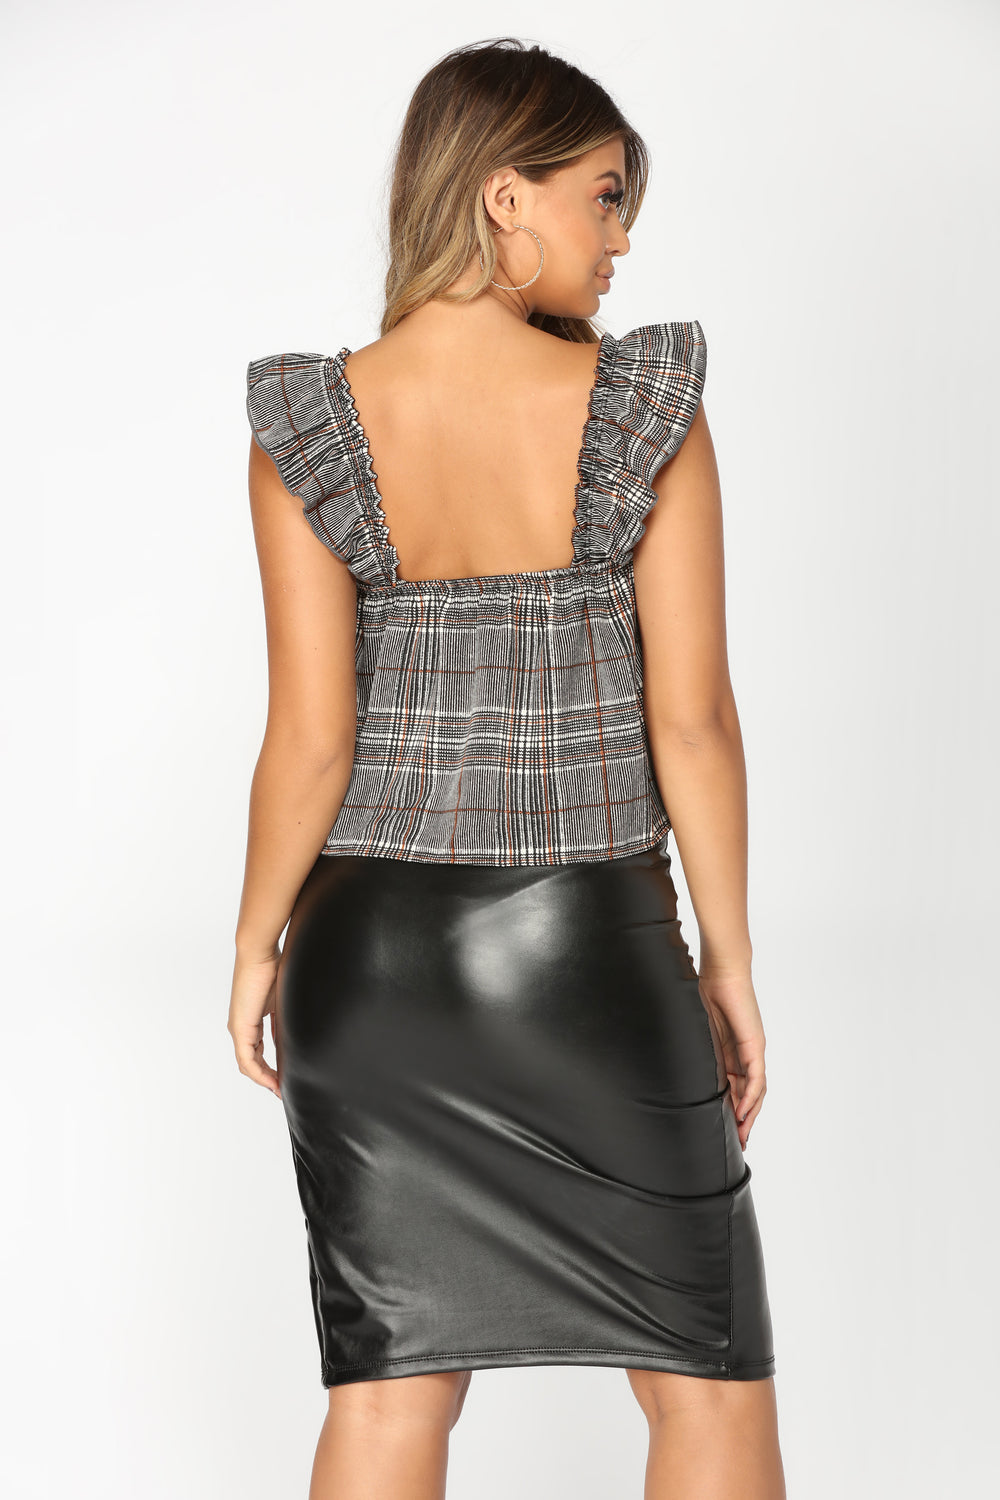 Elliana Plaid Top - Black/White